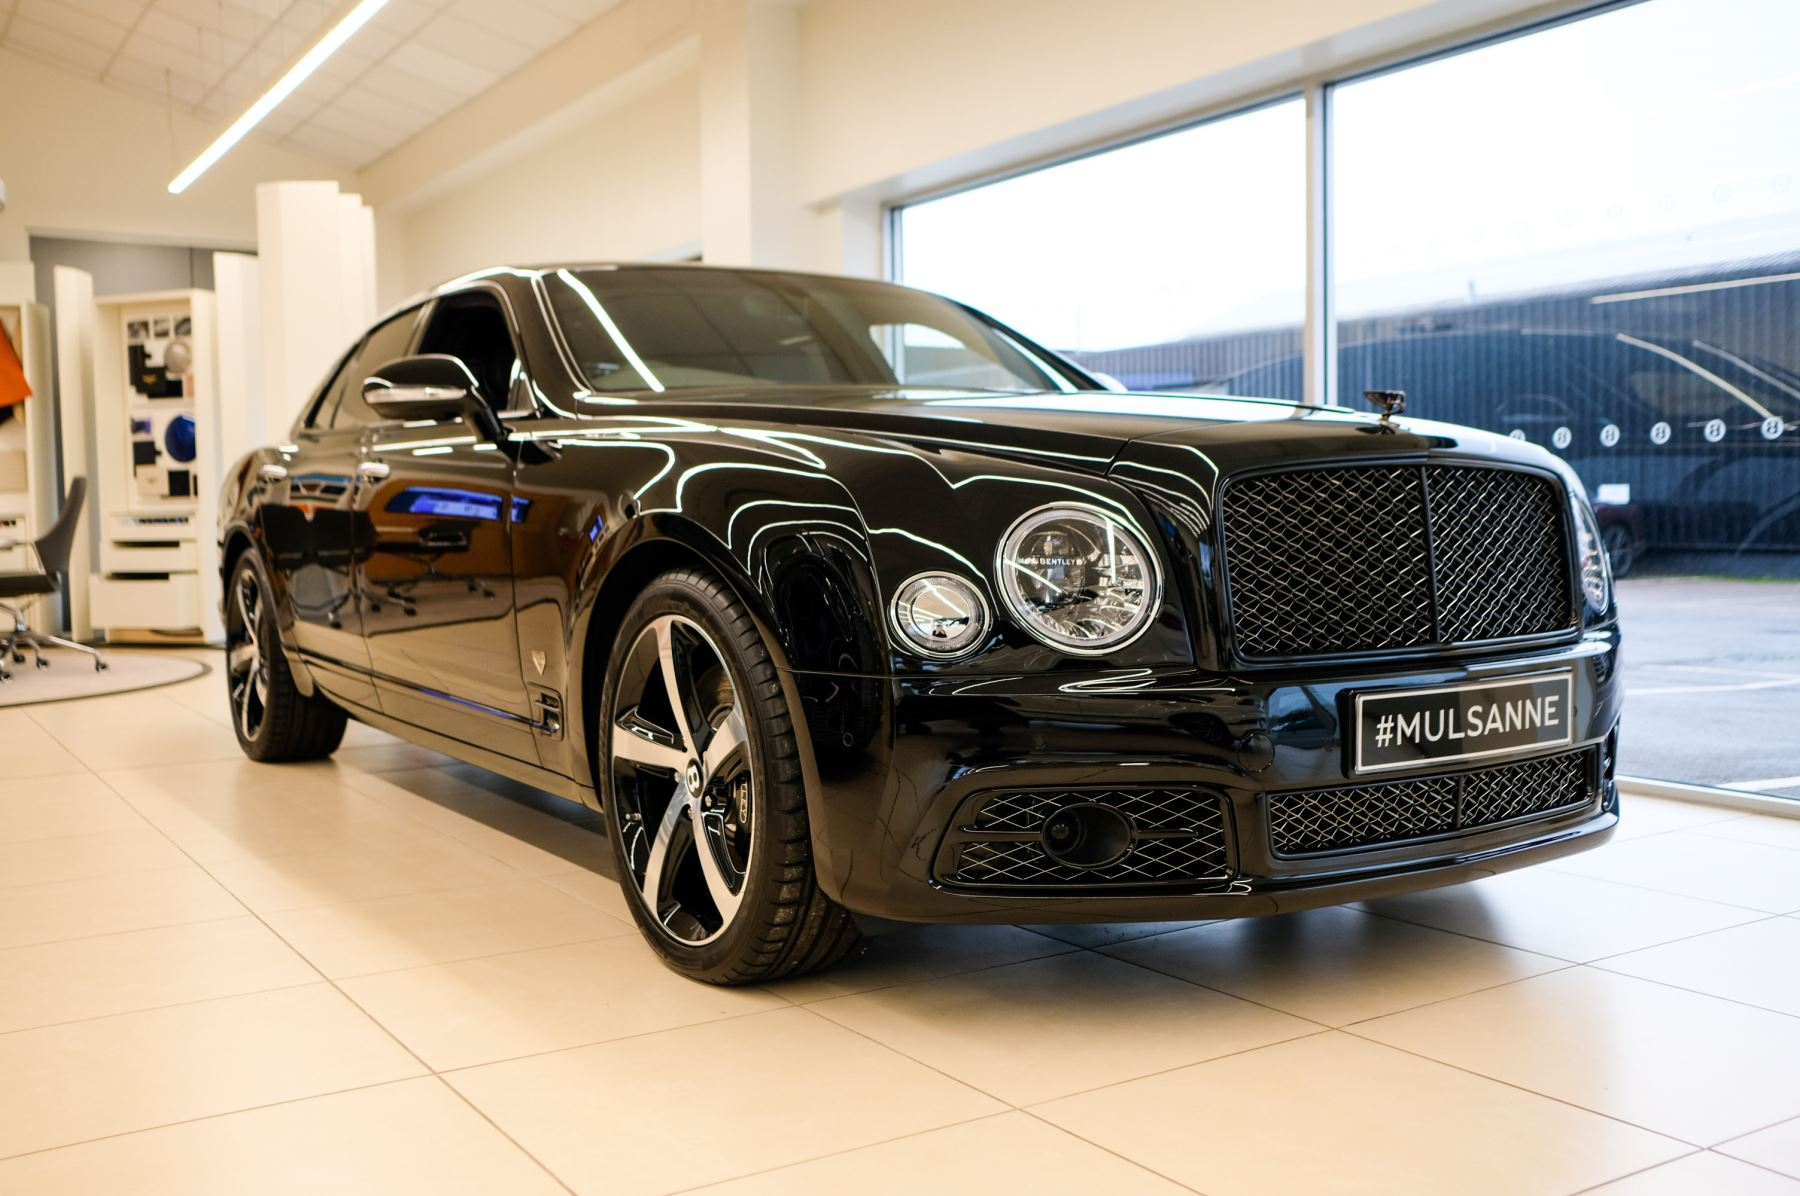 Bentley Mulsanne 0.0 Mulsanne 6.75 Edition by Mulliner